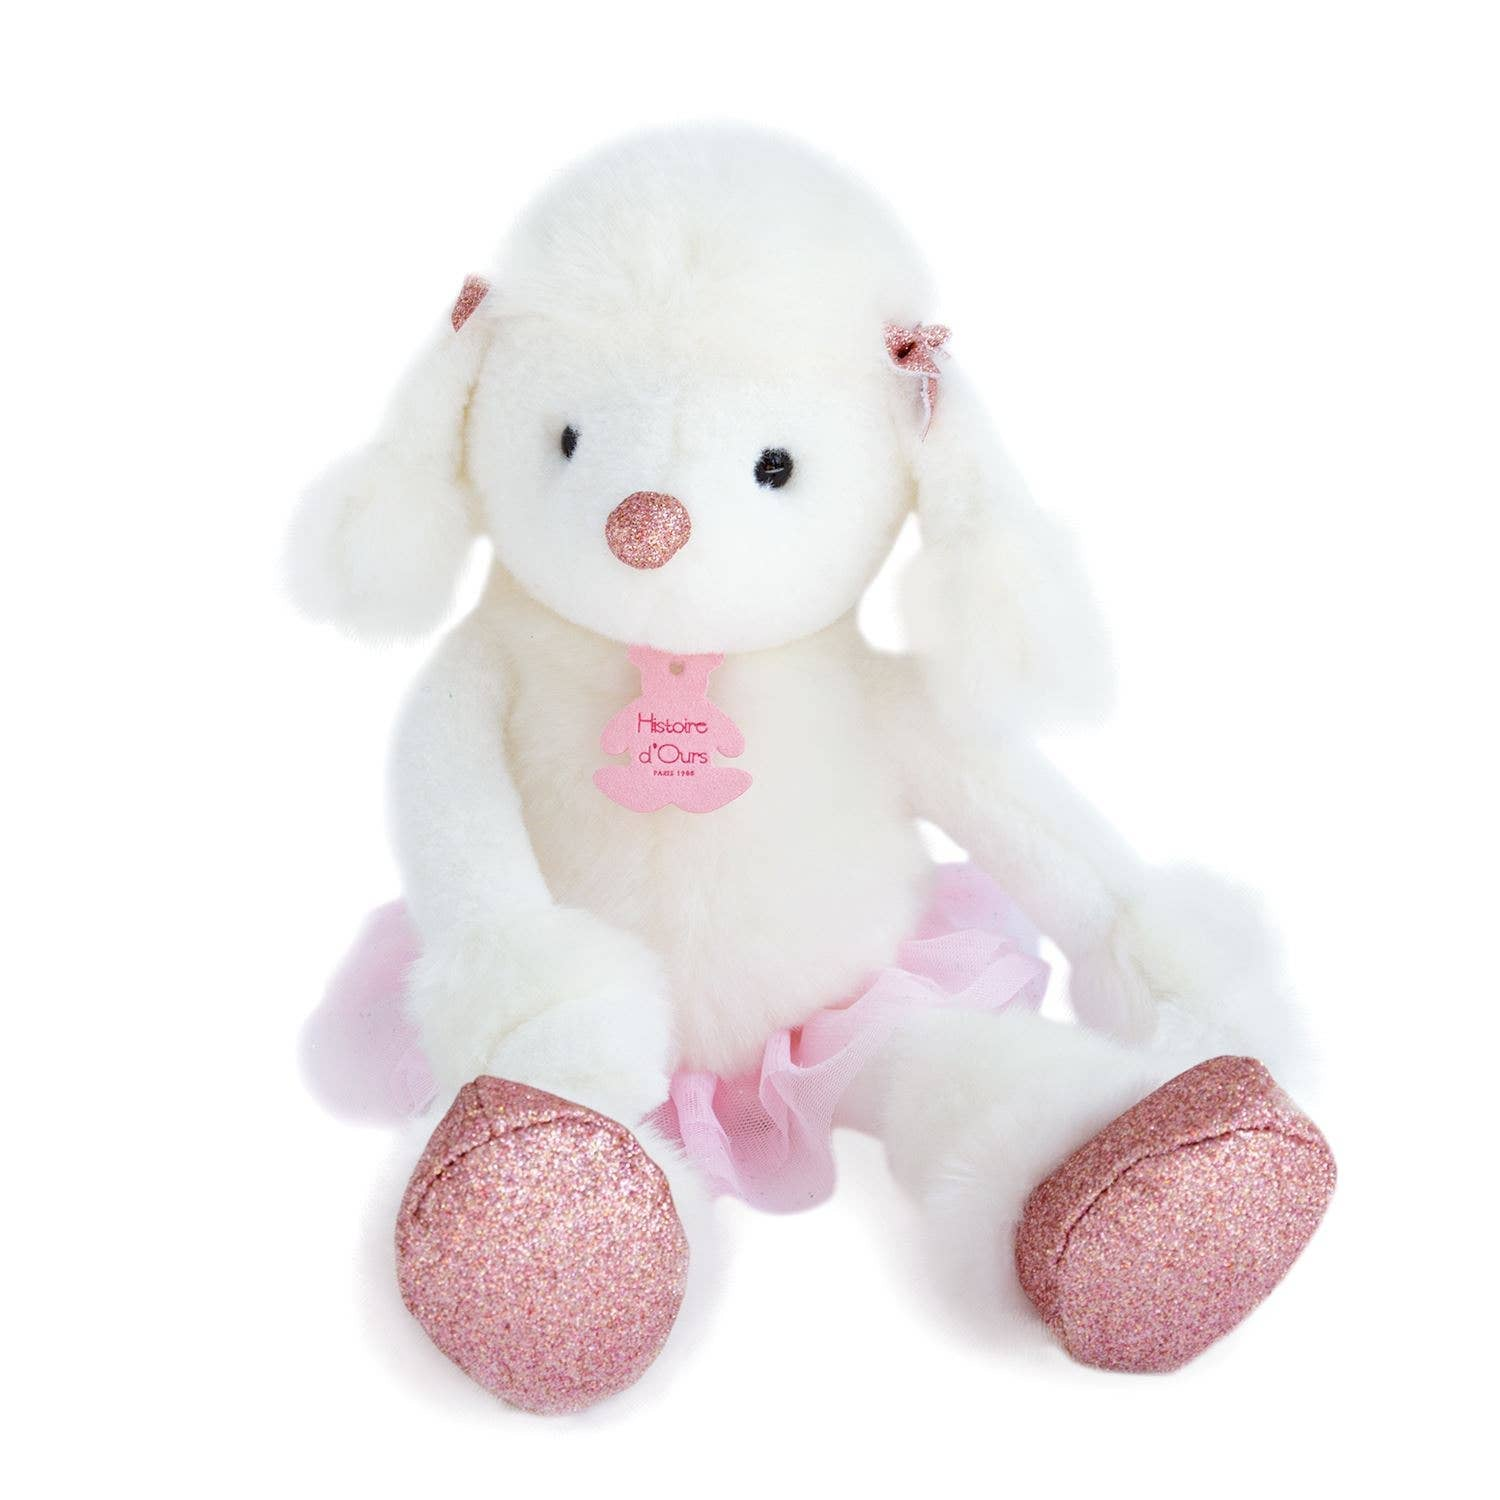 Roxane Poodle Stuffed Animal - Le Bébé Chic Boutique